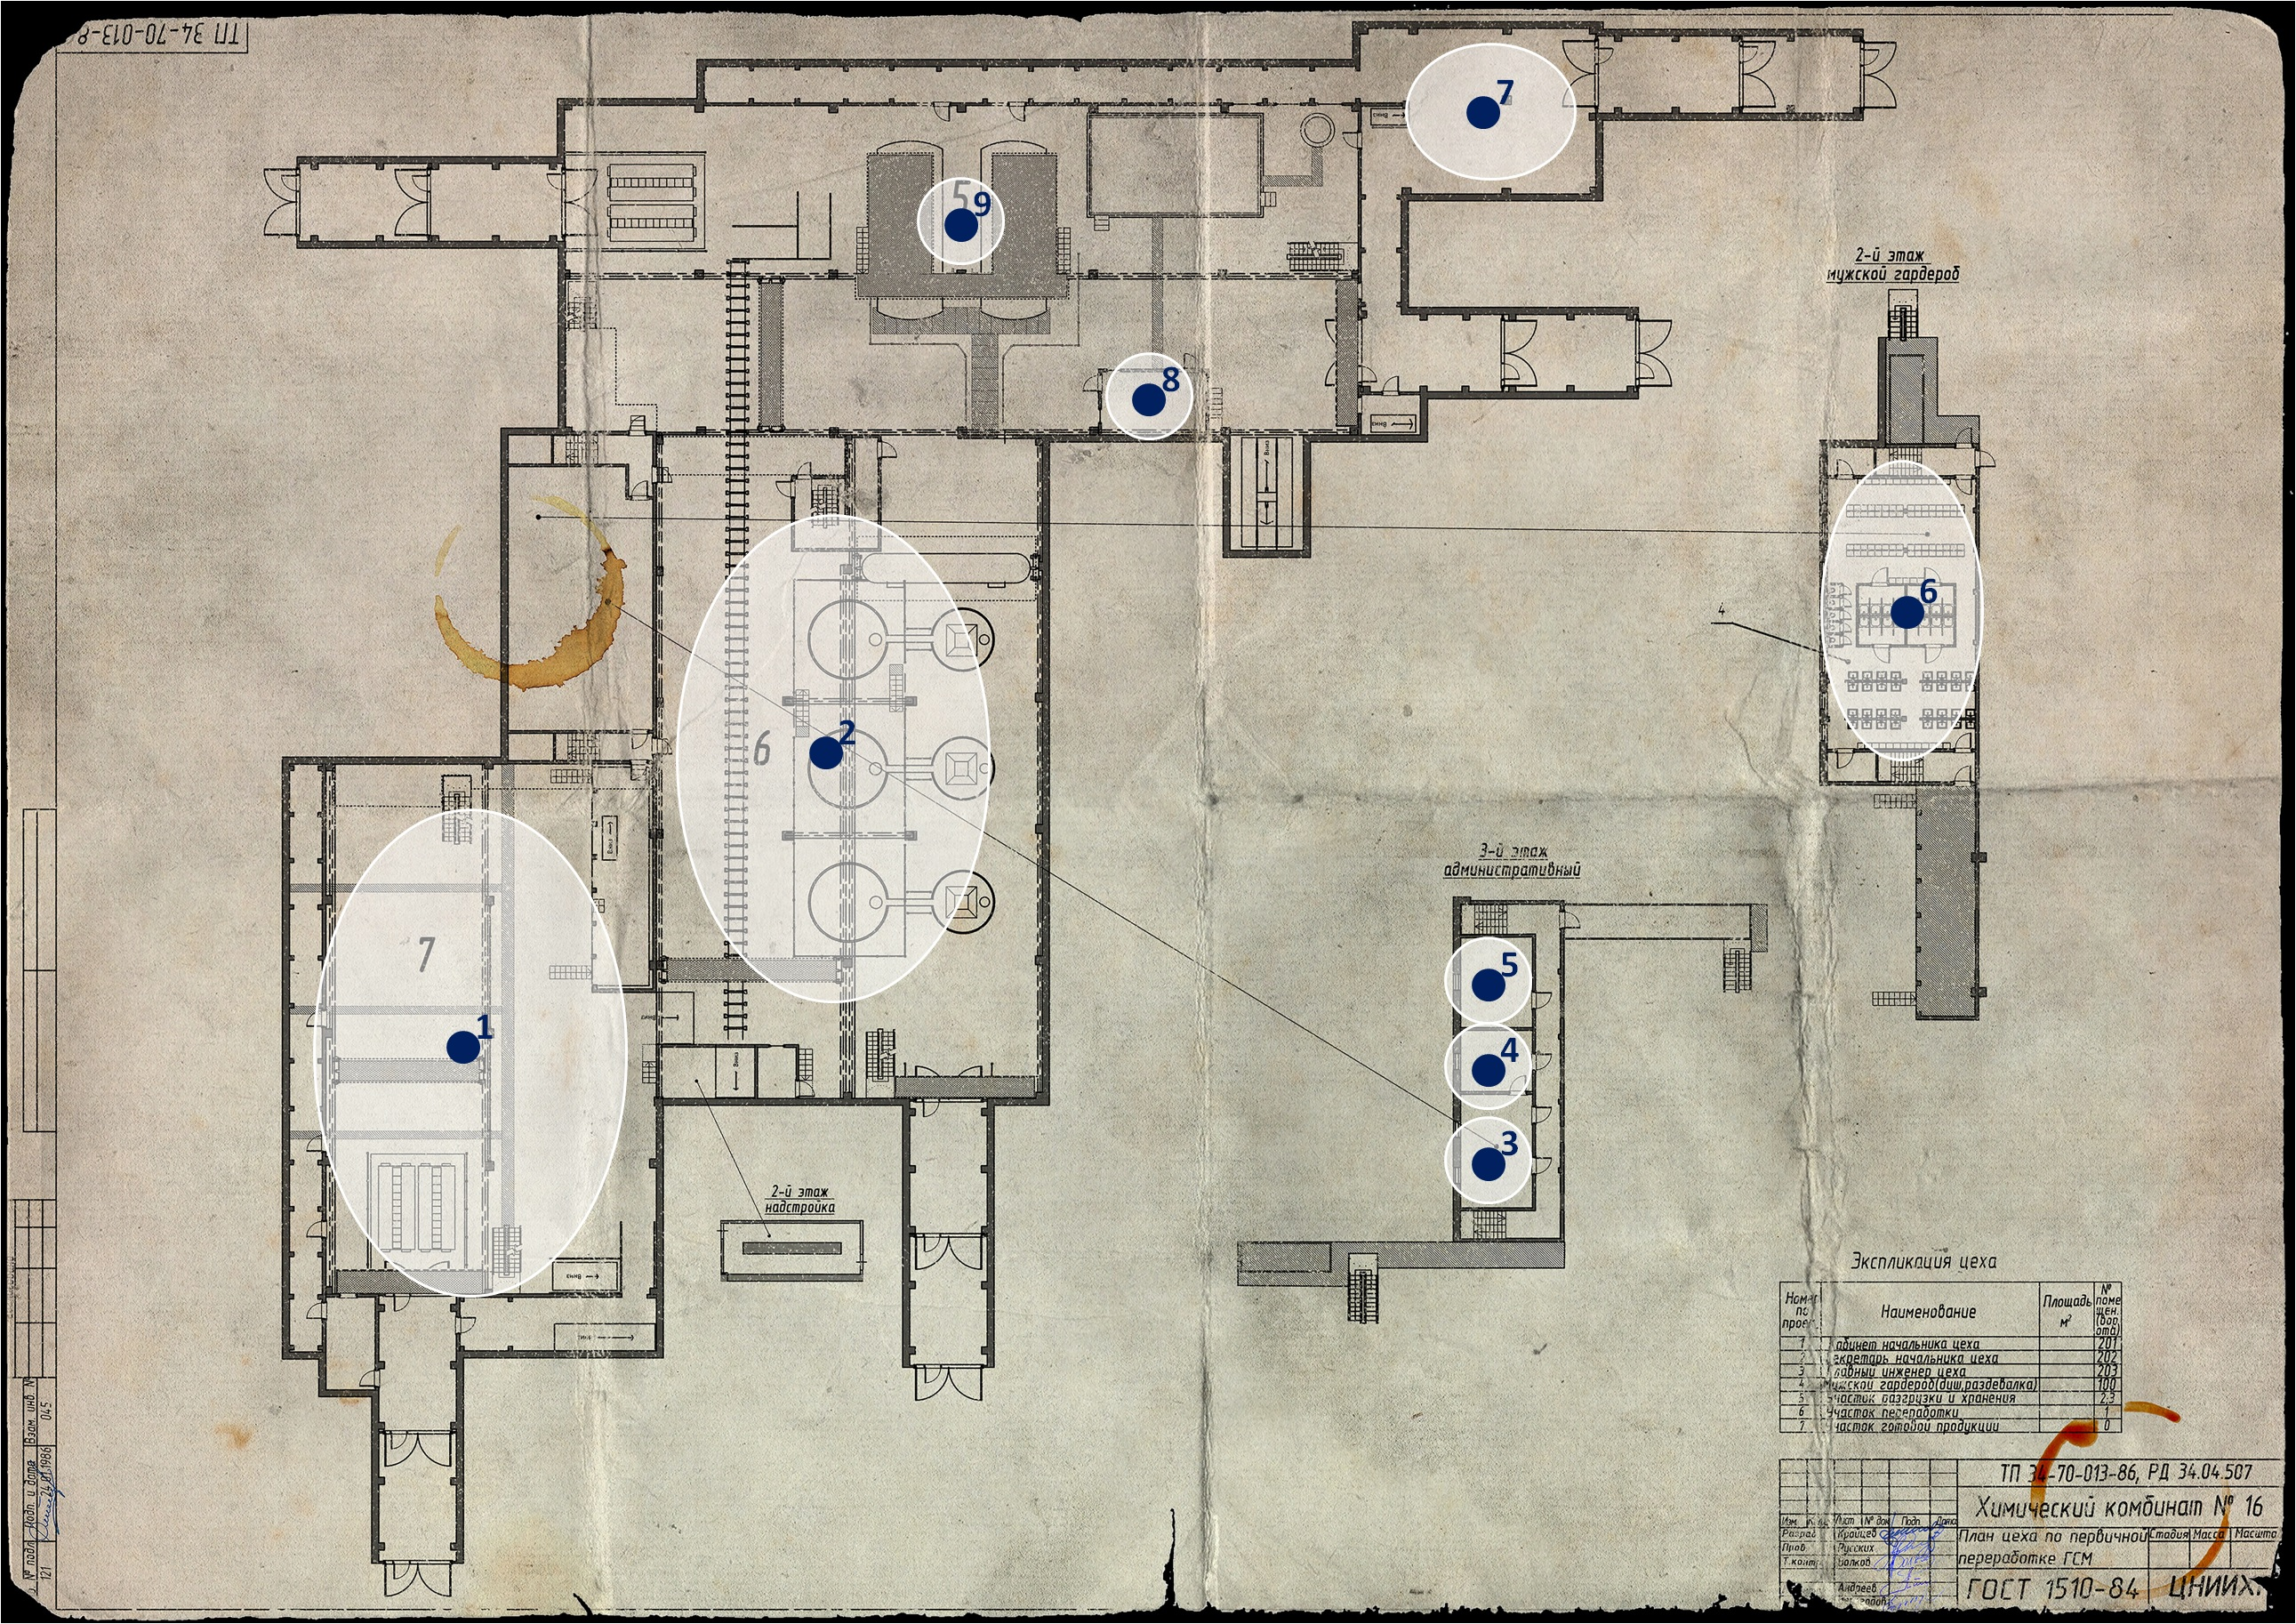 Points of Interest on the Factory map